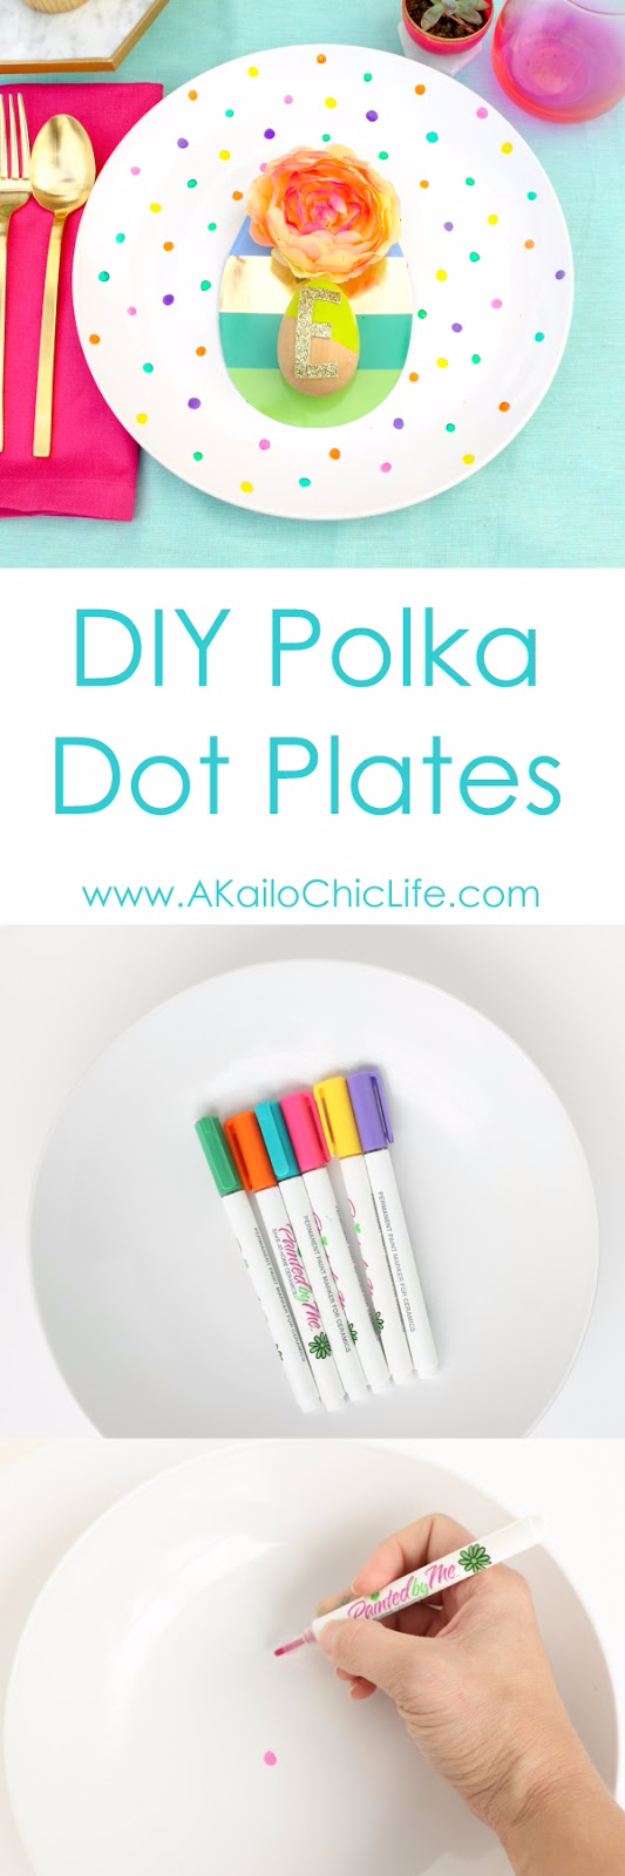 DIY Projects With Old Plates and Dishes - DIY Polka Dot Plates - Creative Home Decor for Rustic, Vintage and Farmhouse Looks. Upcycle With These Best Crafts and Project Tutorials #diy #kitchen #crafts